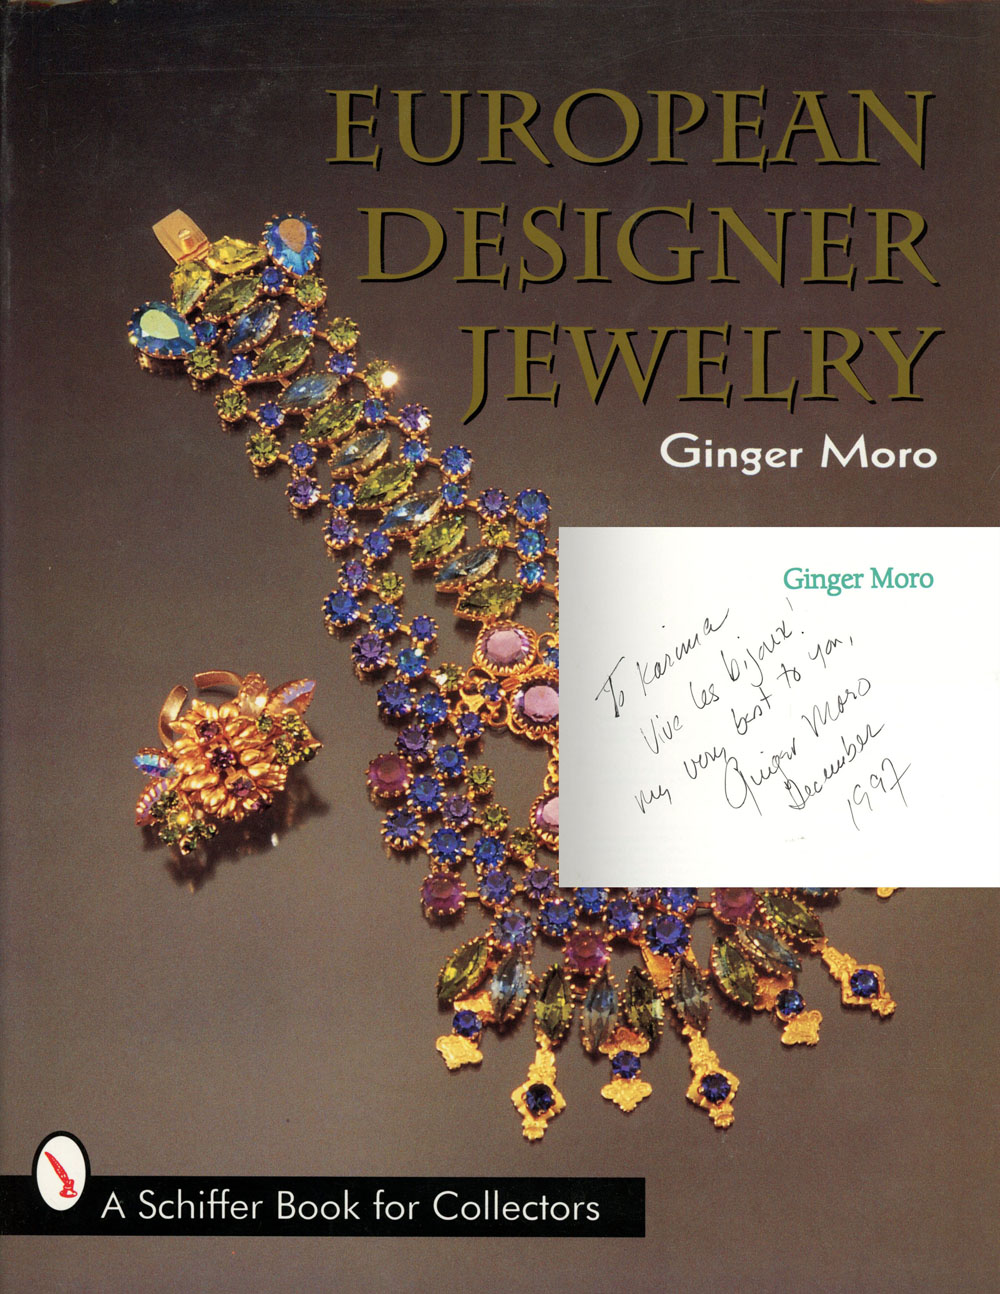 European Designer Jewelry A Schiffer Book for Collectors Ginger